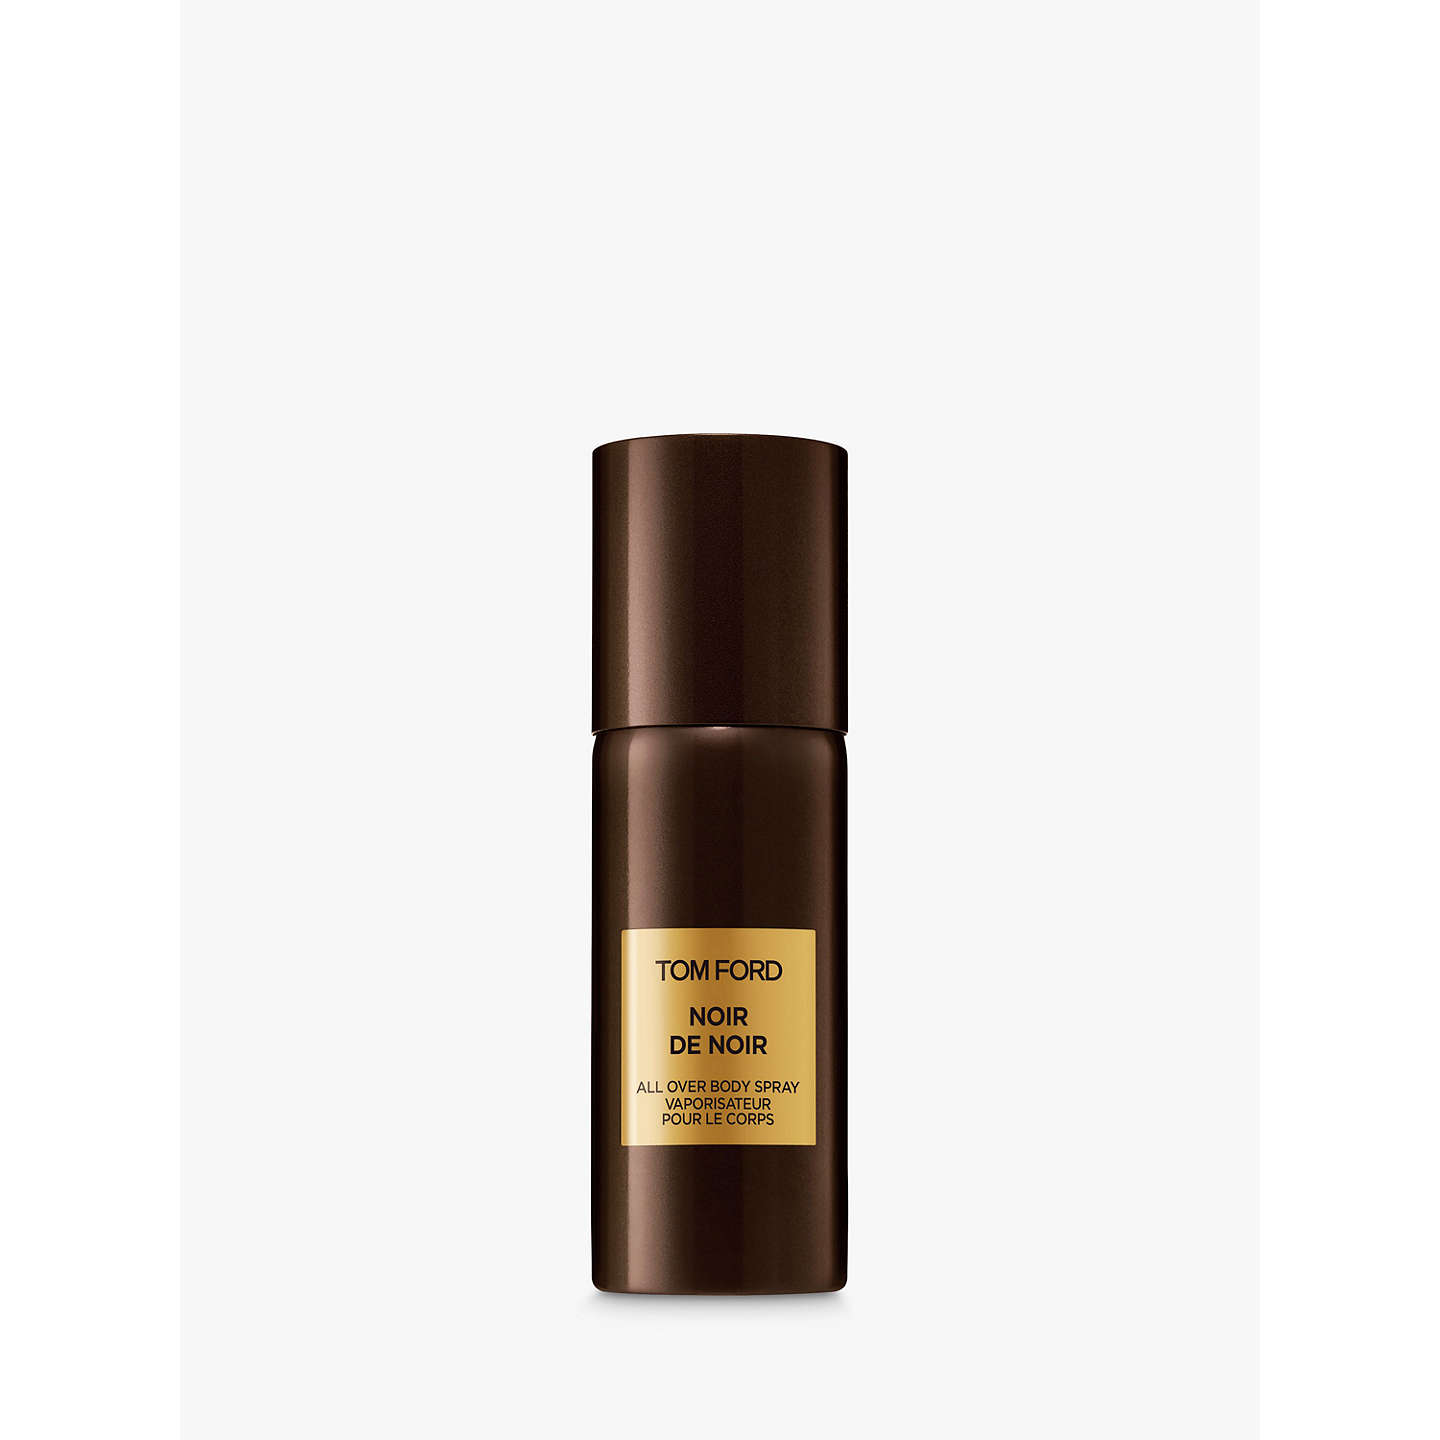 BuyTOM FORD Private Blend Noir De Noir Body Spray, 150ml Online at johnlewis.com